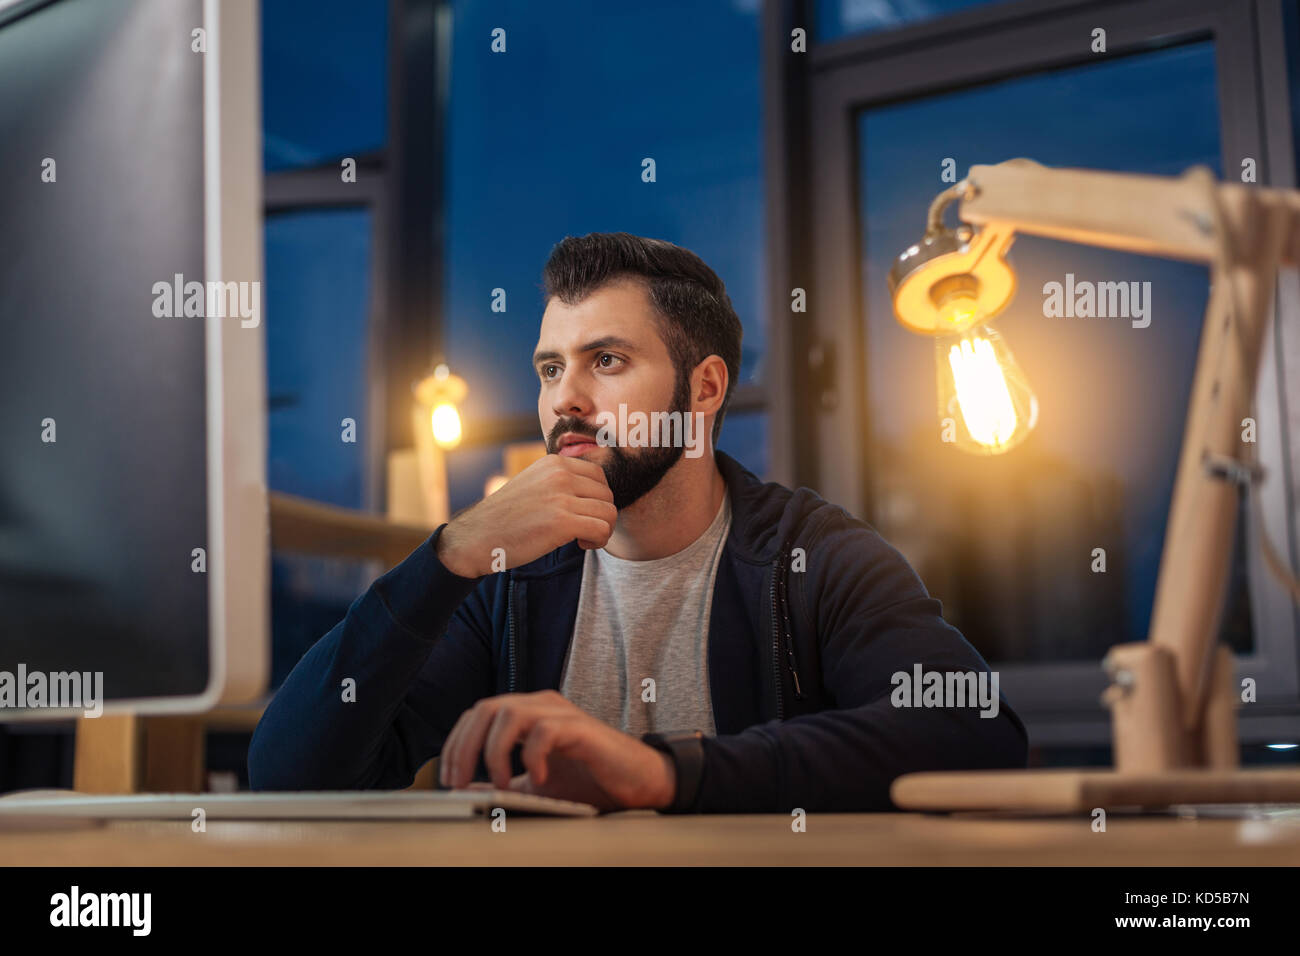 Serious male person working in the office - Stock Image